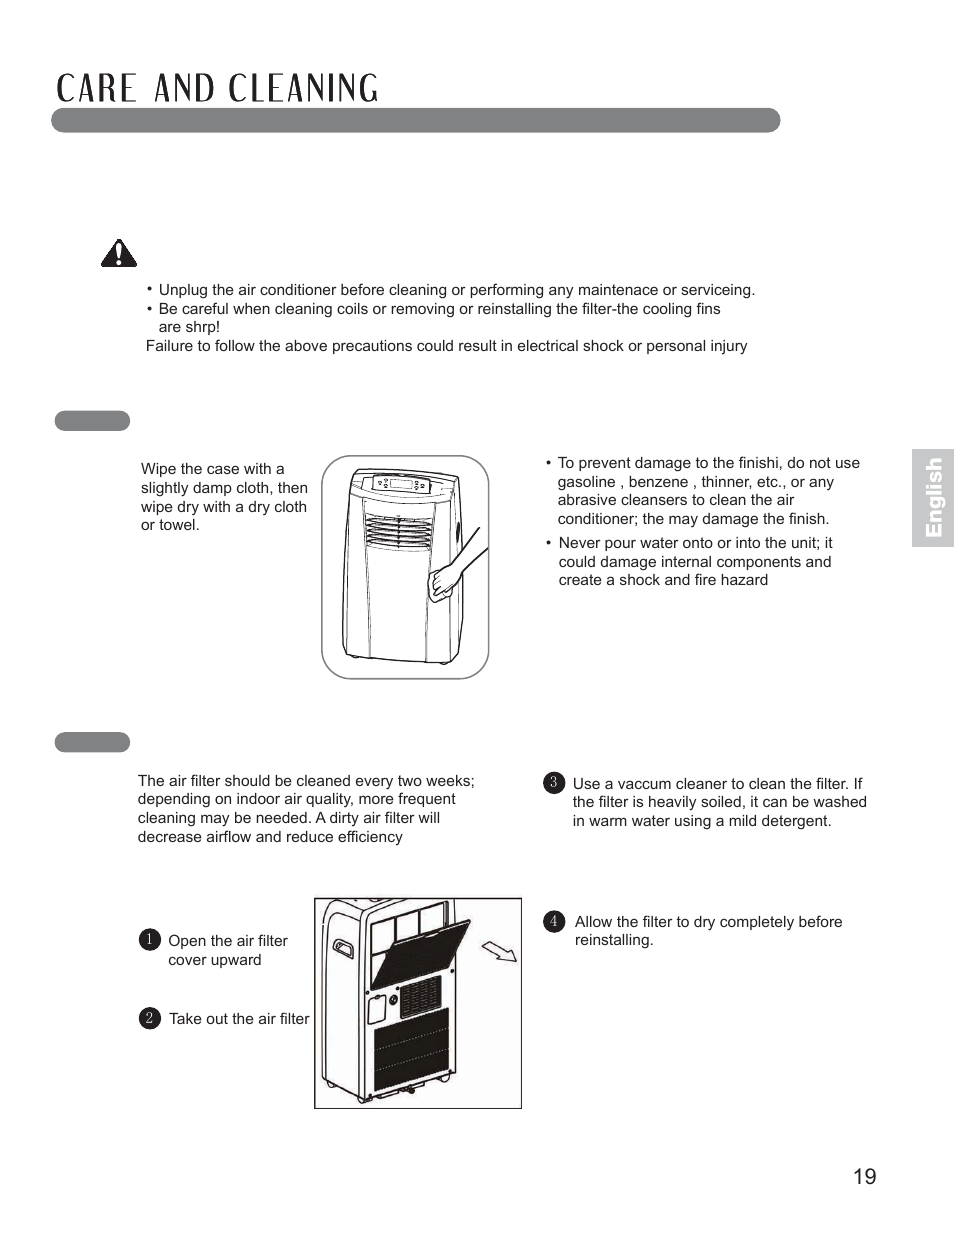 cleaning the case cleaning the air filter warning lg lp1010snr rh manualsdir com LG LP1010SNR Review LG 1010 Snr